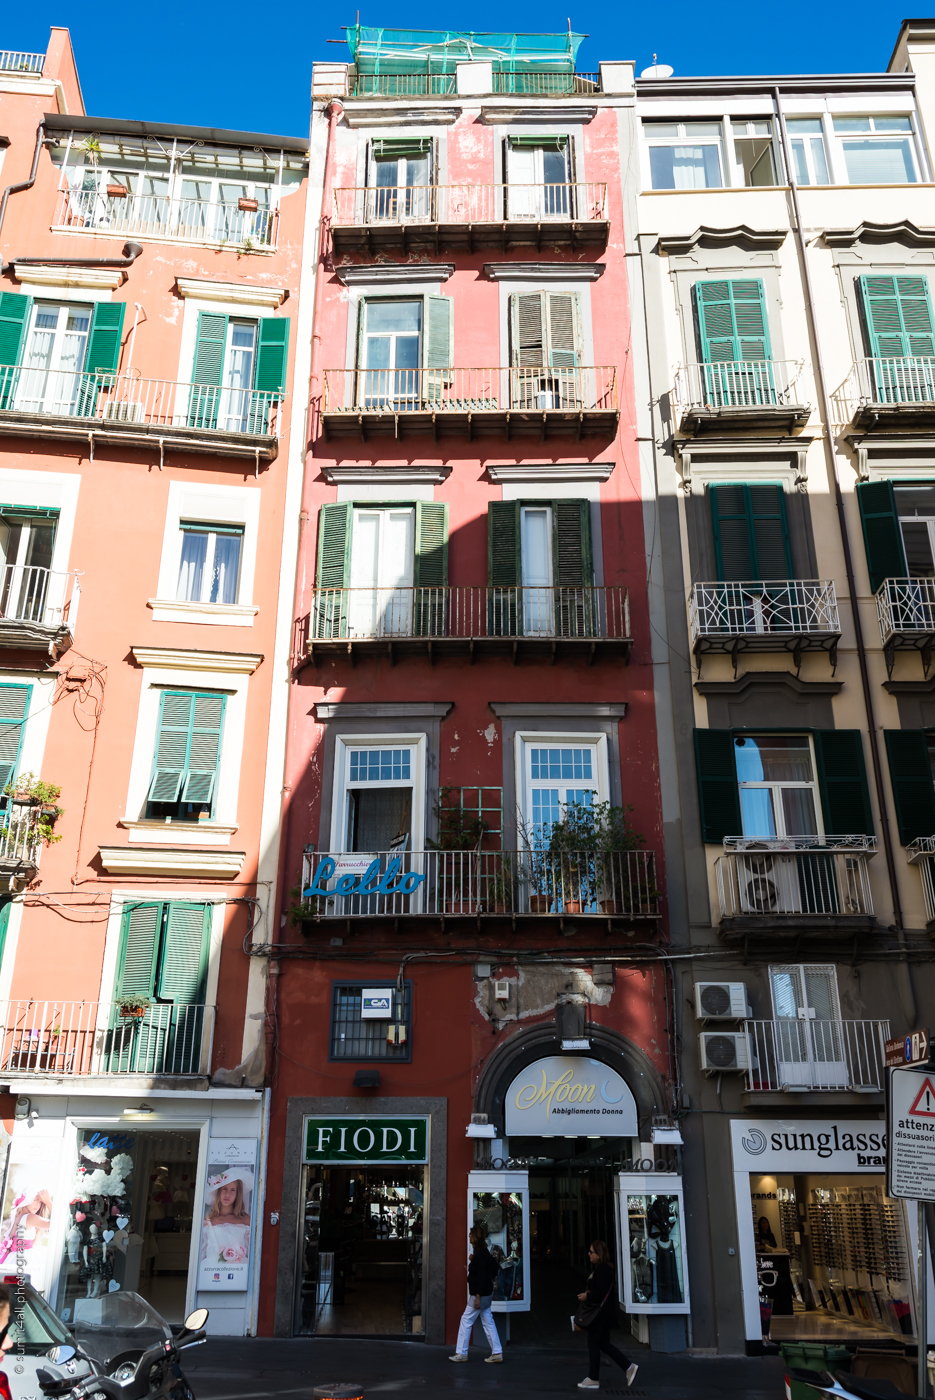 Worn Out Paint on Buildings in Naples, Italy